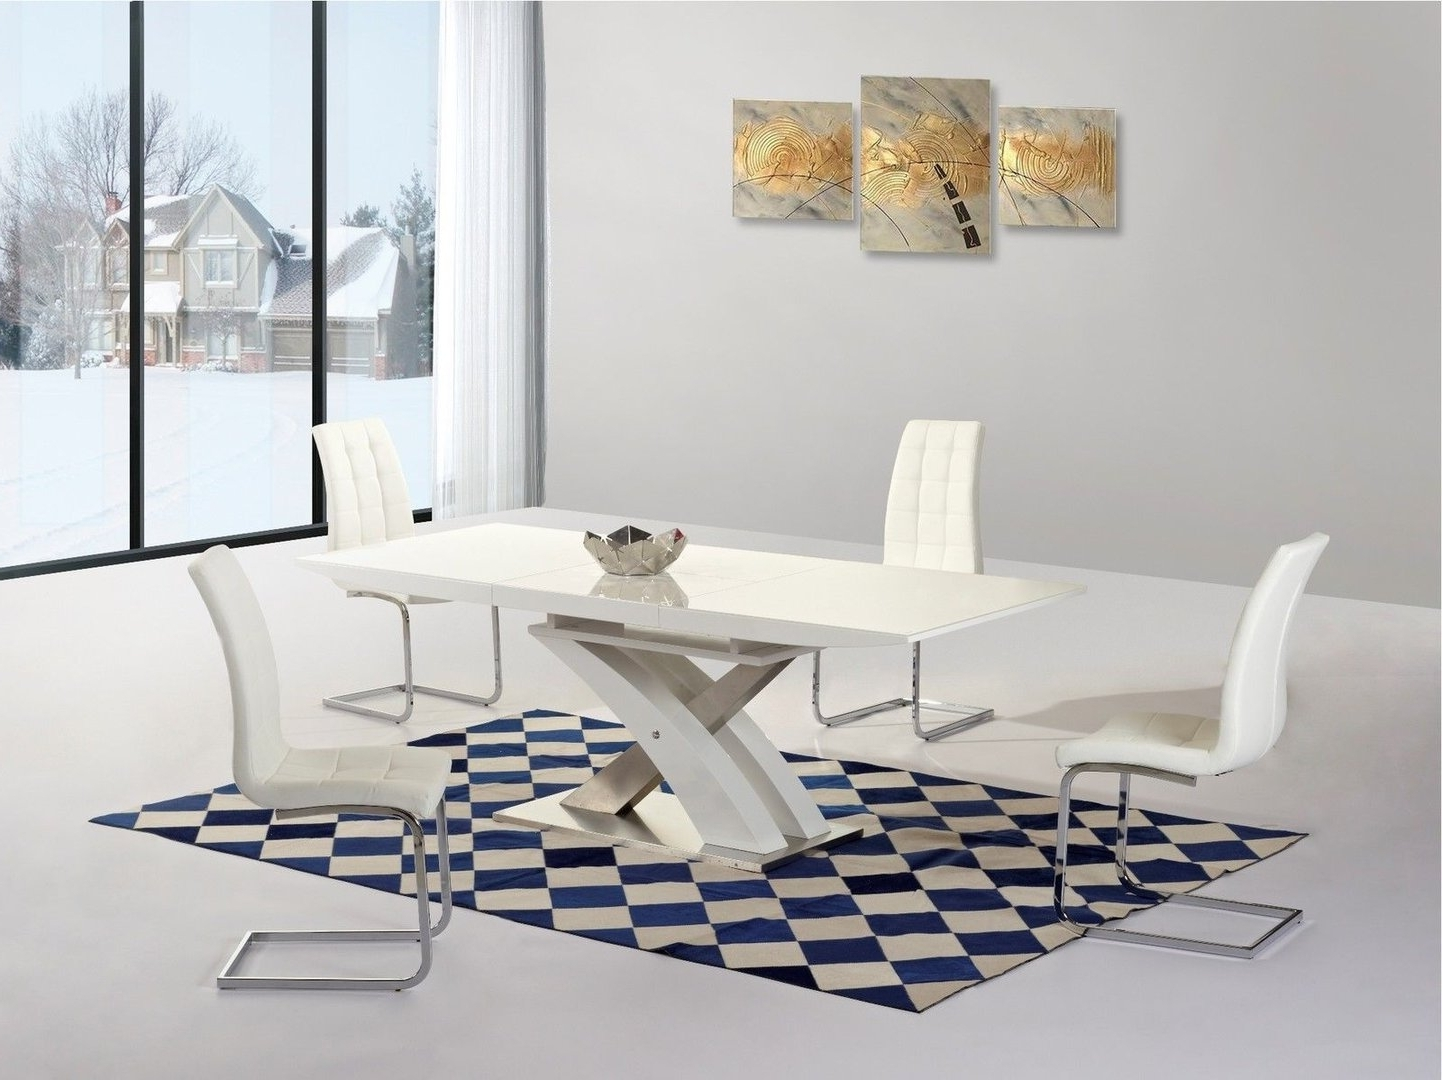 High Gloss Extendable Dining Tables intended for Fashionable White Extending Gloss Dining Table And 6 Chairs Homegenies Curved